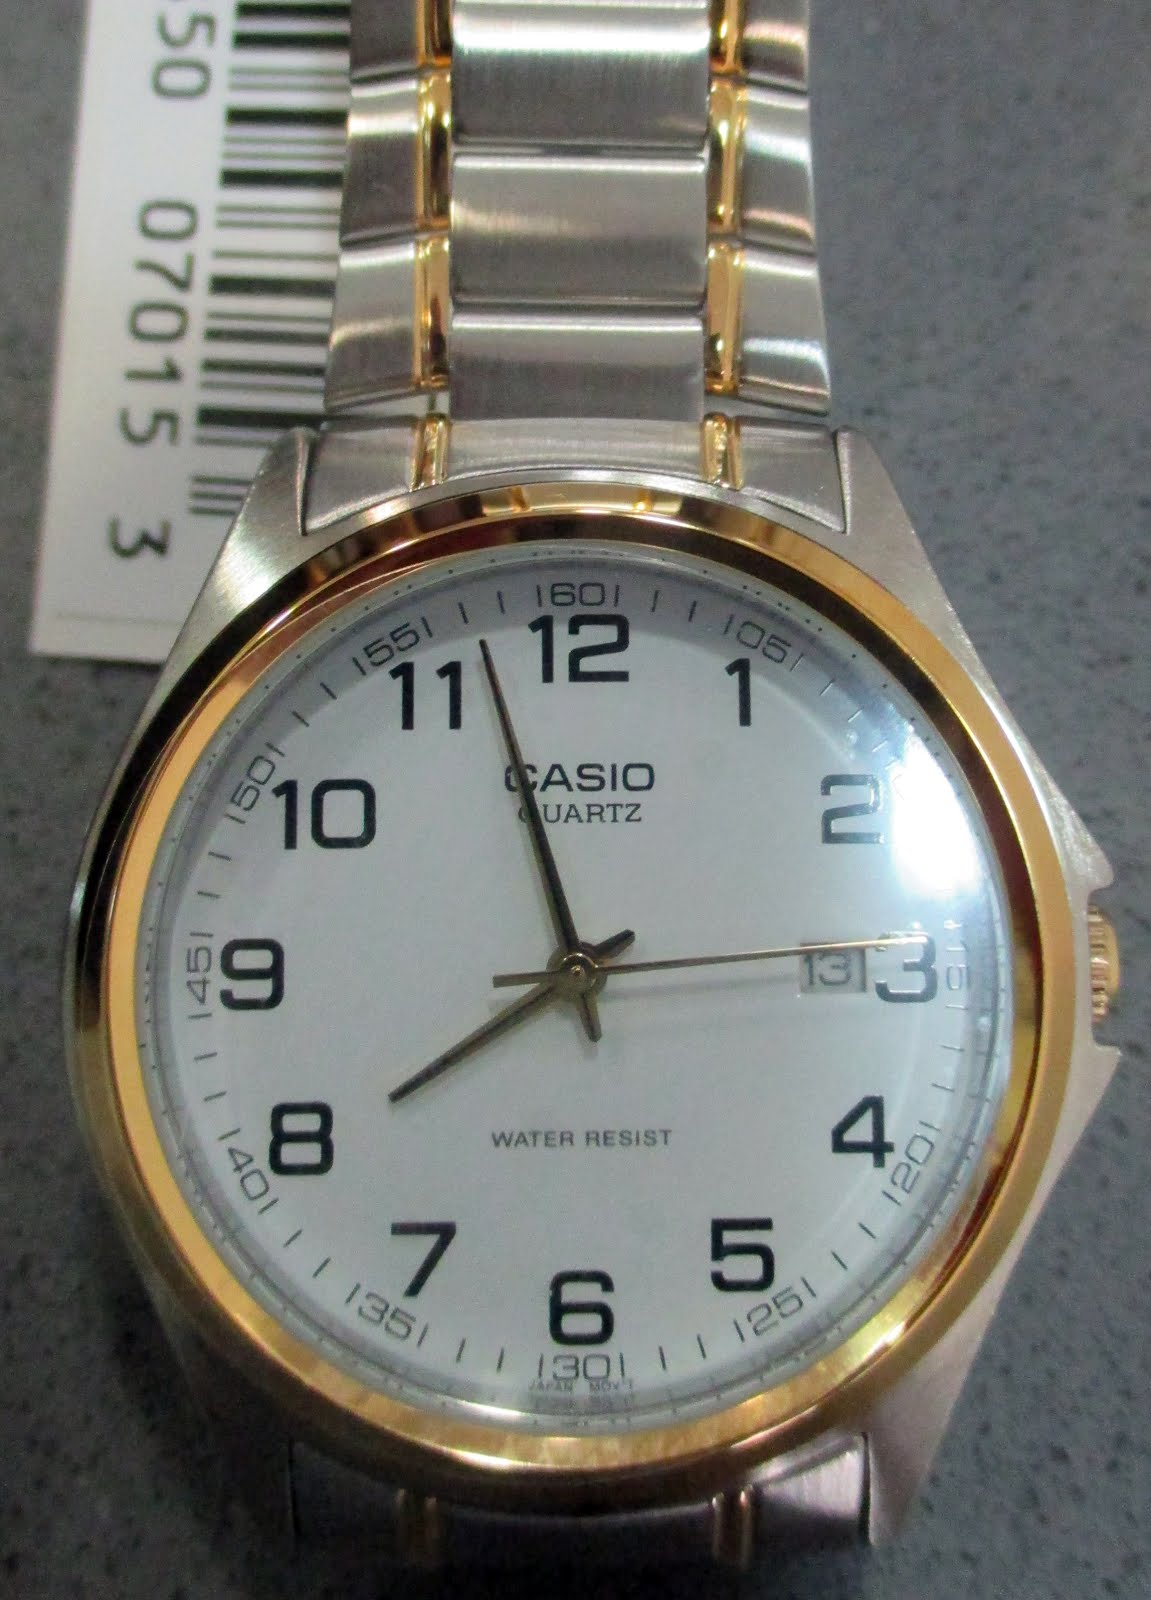 Reloj Casio, army acero bicolor, calendario